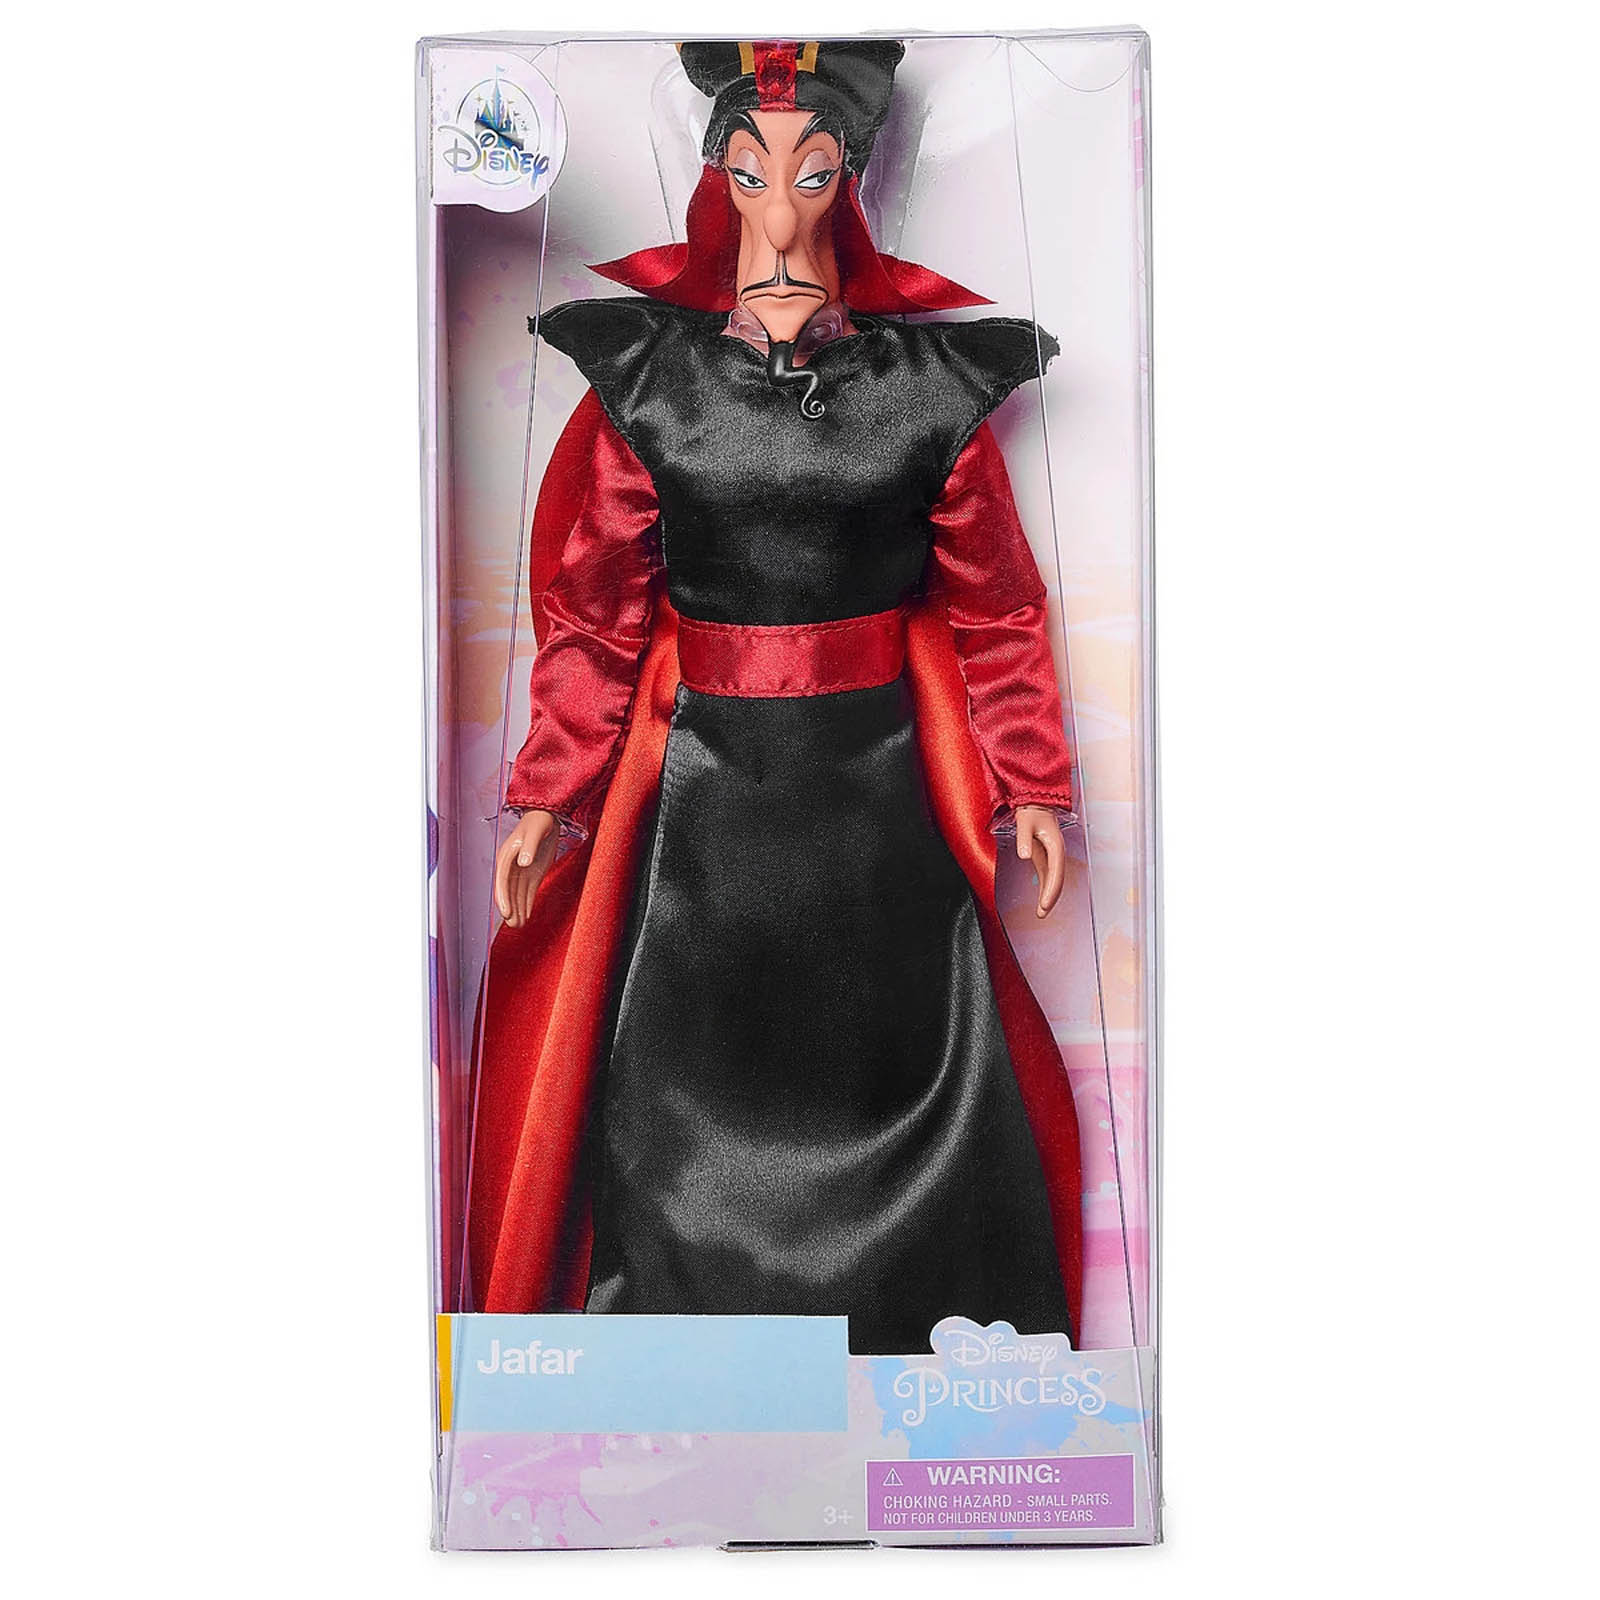 Disney Jafar Doll from Aladdin